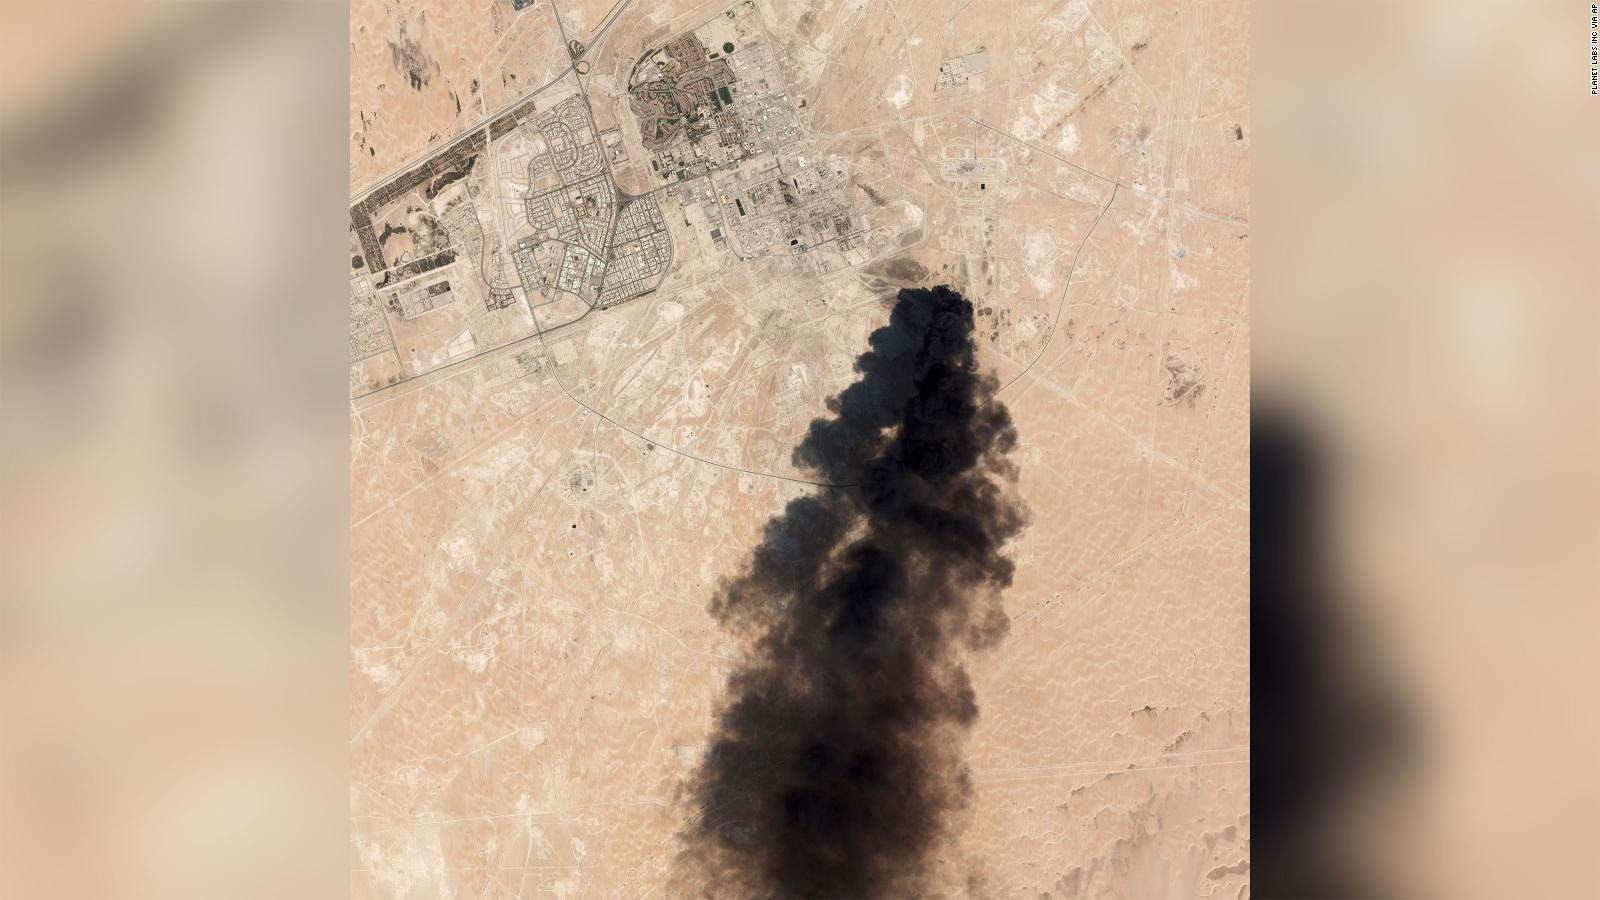 Satellite images show targets hit in oil attack, US says